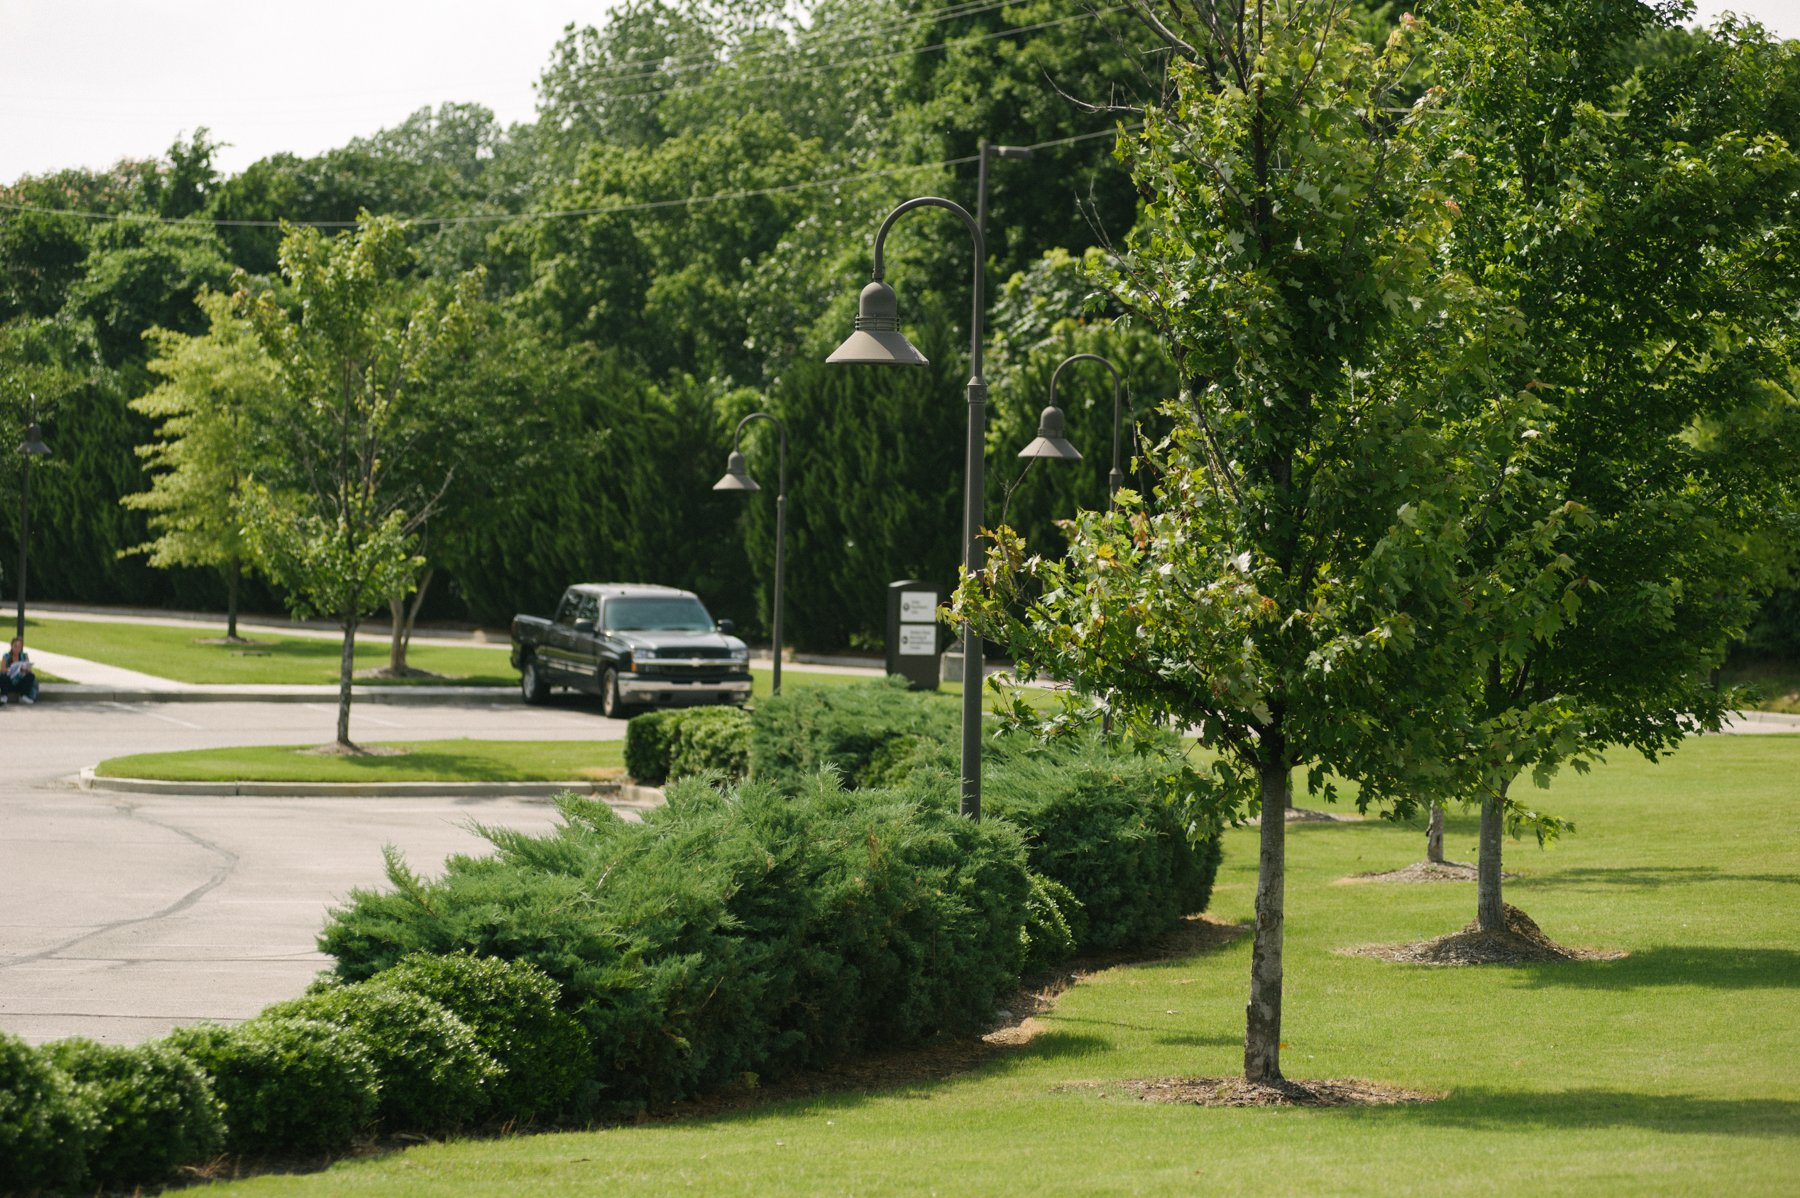 Trees in parking lot landscaping